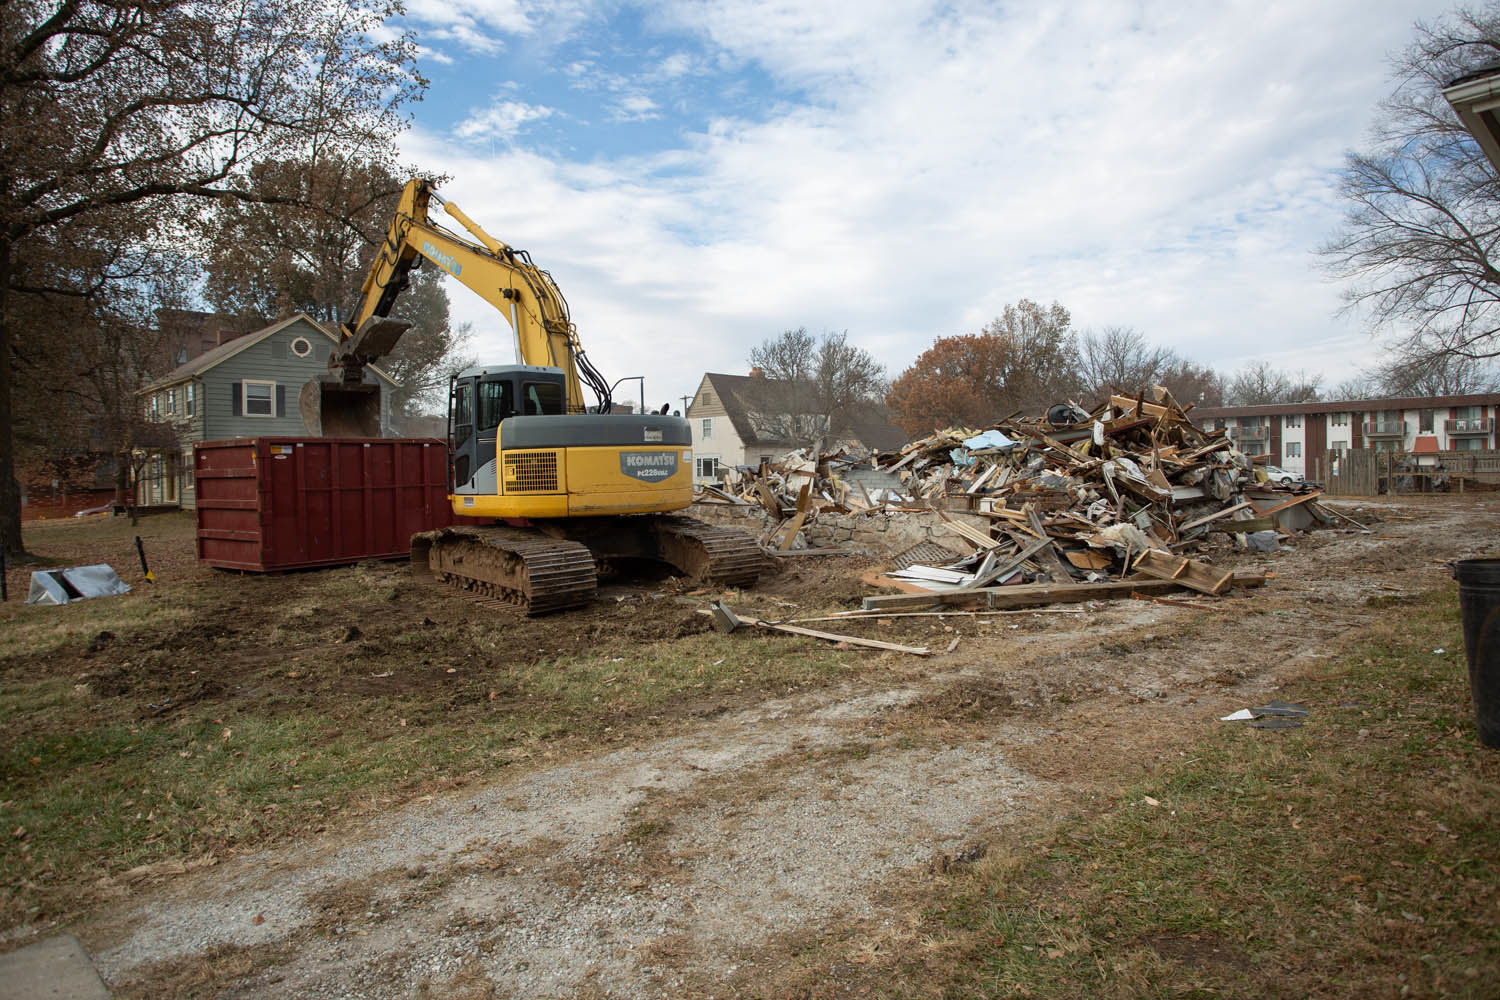 Several houses on East Cherry Street have been demolished to accommodate a residential development.